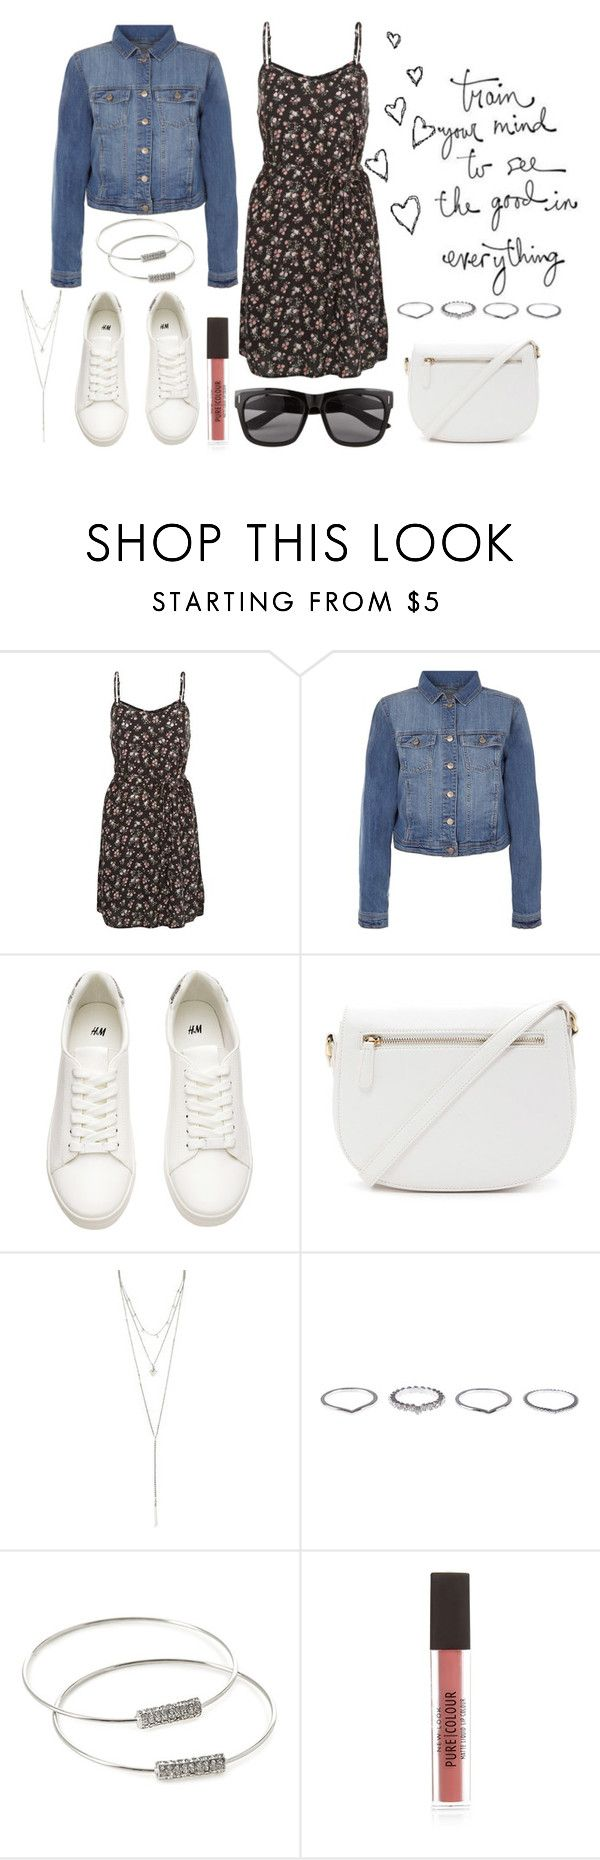 """""""Cute & Chic Summer Look for the Pear Body Shape"""" by ladylikecharm ❤ liked on Polyvore featuring New Look, H&M, Forever 21, ALDO and Vero Moda"""